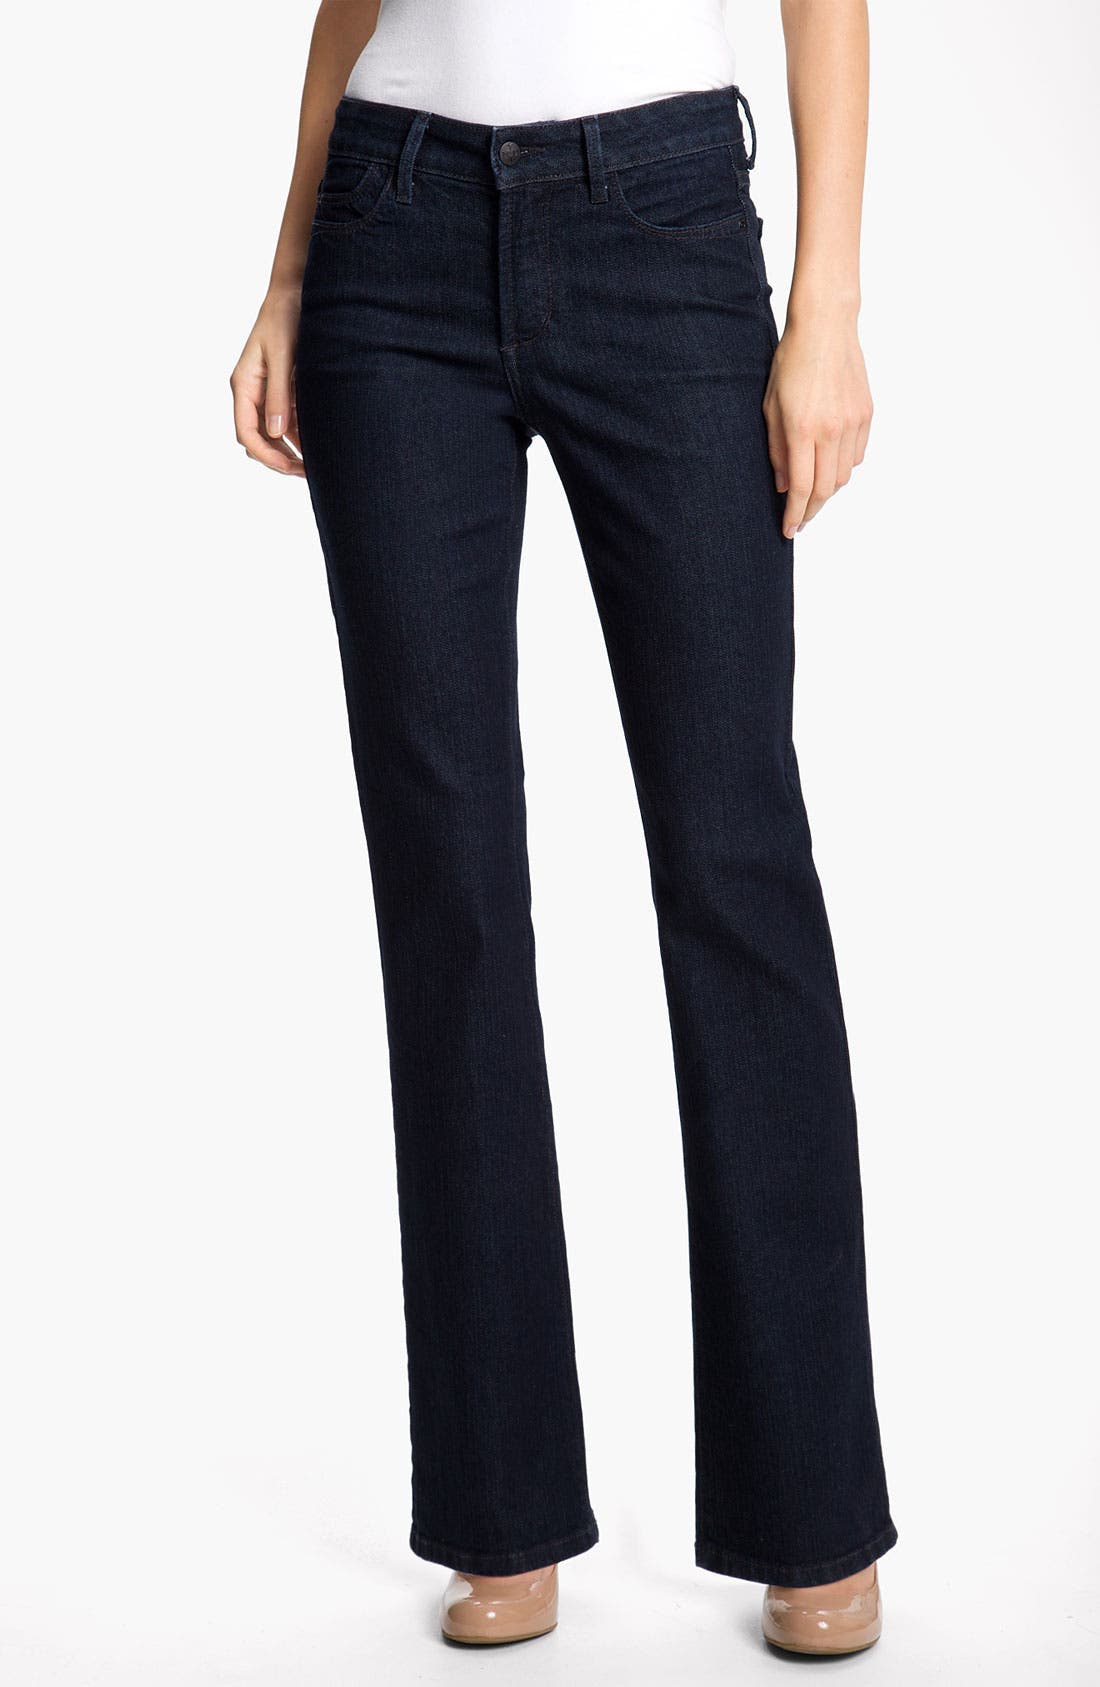 Alternate Image 1 Selected - NYDJ 'Barbara' Stretch Bootcut Jeans (Dark Enzyme) (Petite)